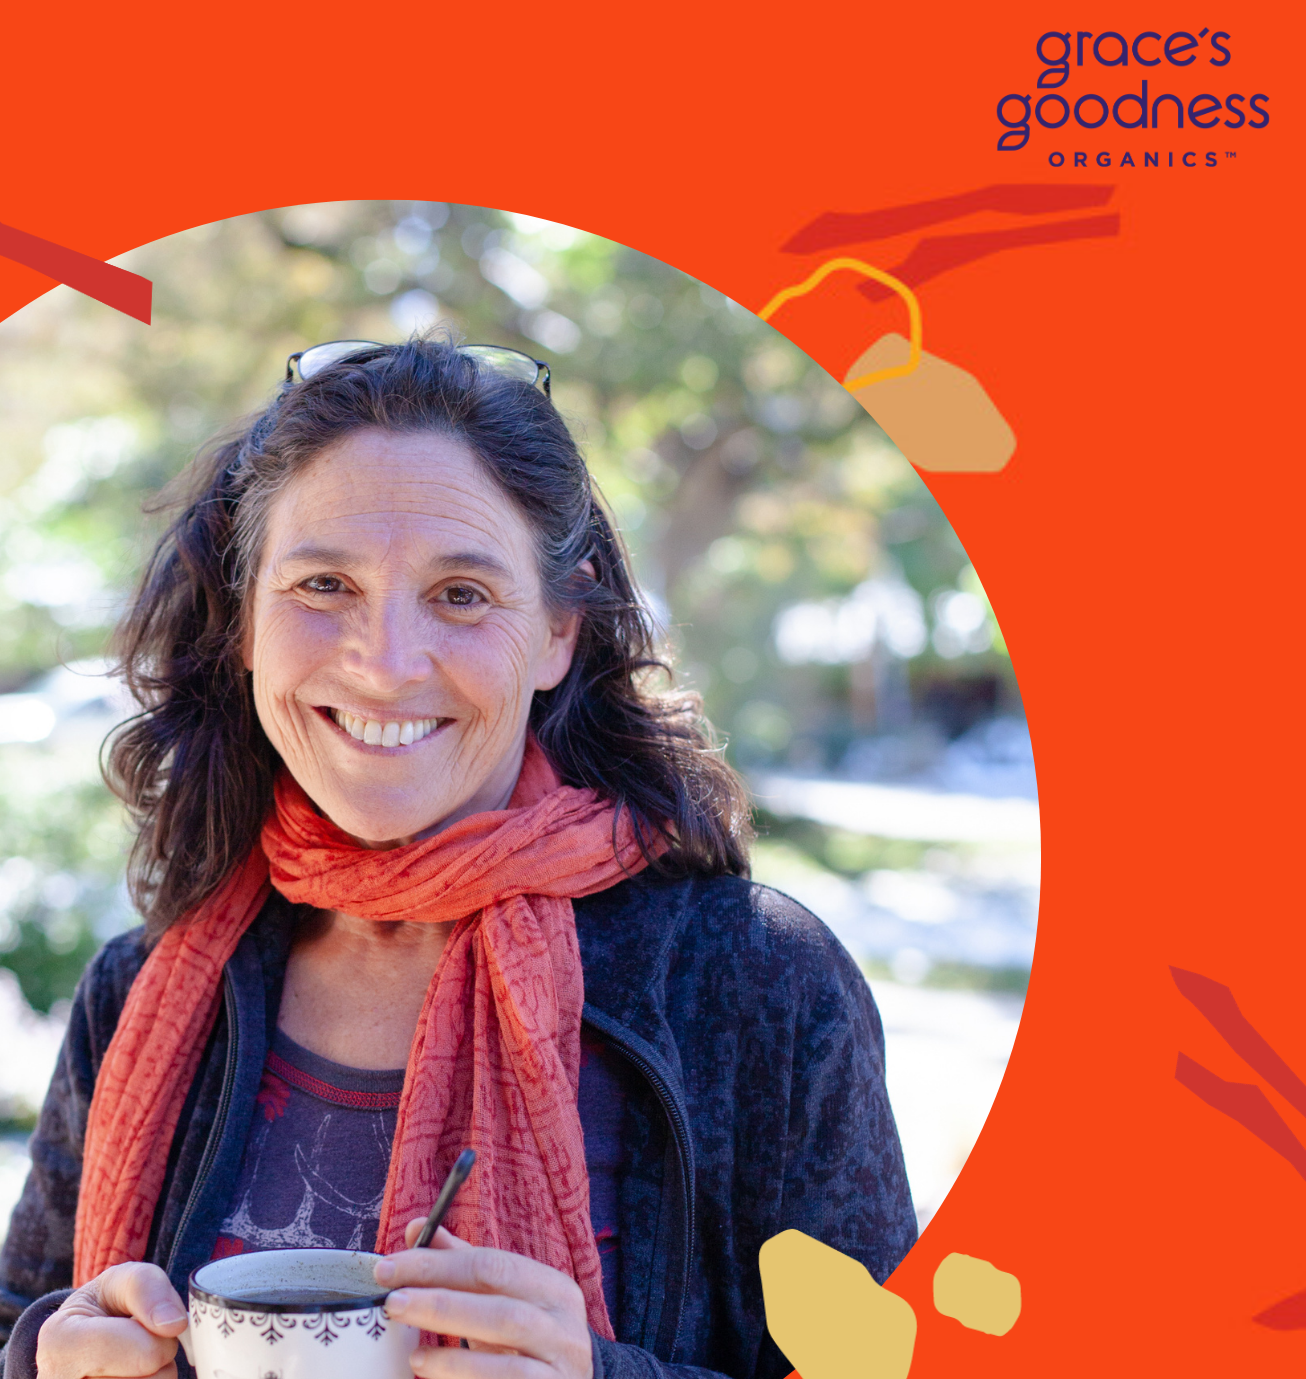 Grace Ventura of Grace's Goodness Organics formerly Beyond Broth is launching a Spring Wellness Reboot May 3 - May 23, 2021. Join Grace for a 21-day cleanse to nurture and regenerate your body, mind and spirit. Non-GMO, Earth Kosher, Gluten-Free, Vegan, Soy-Free.